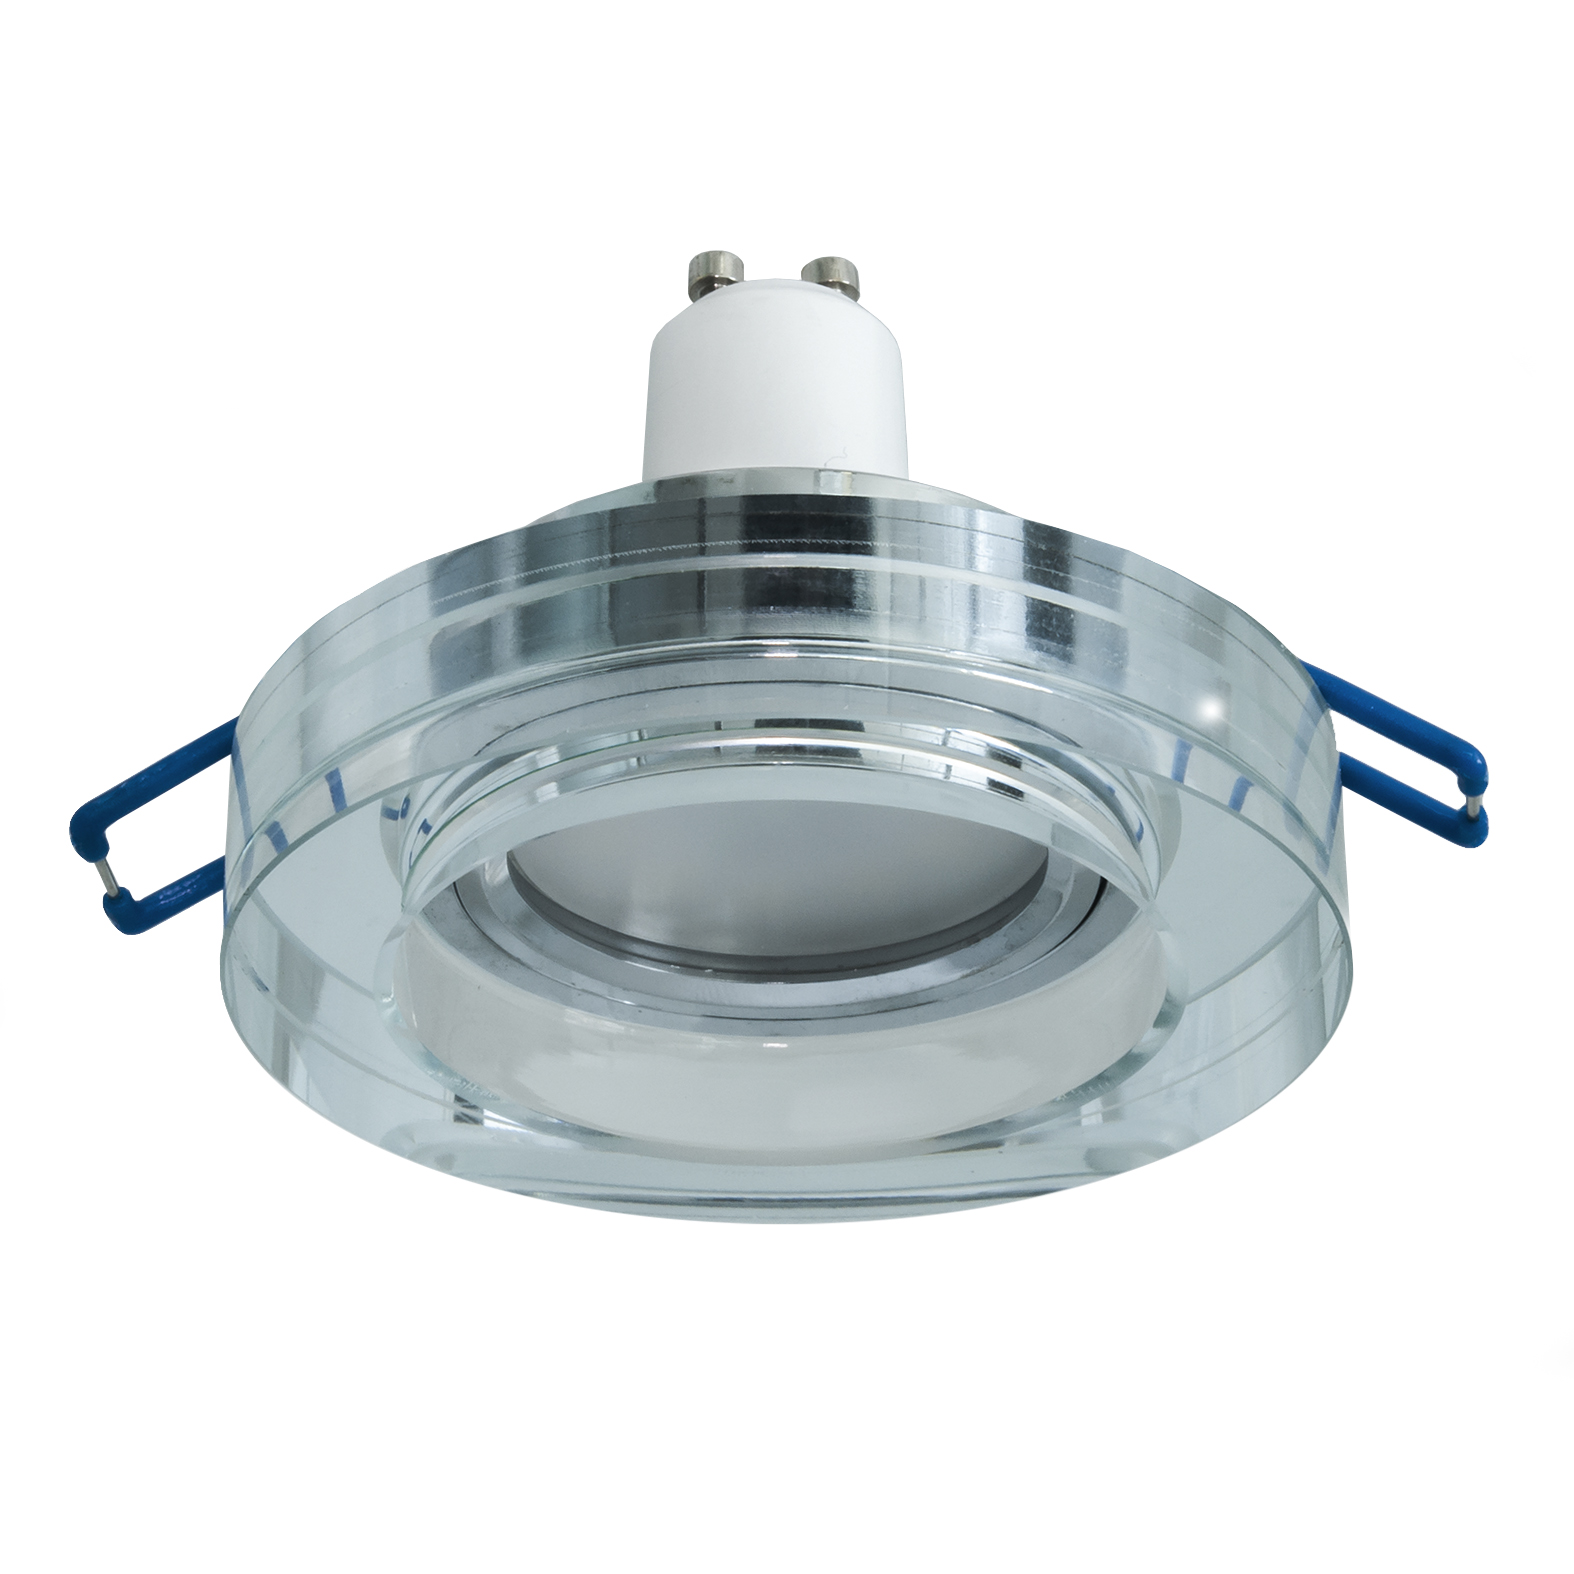 Spotlight mirrored glass recessed round 60mm lamp ceiling LED spot light 5W GU10